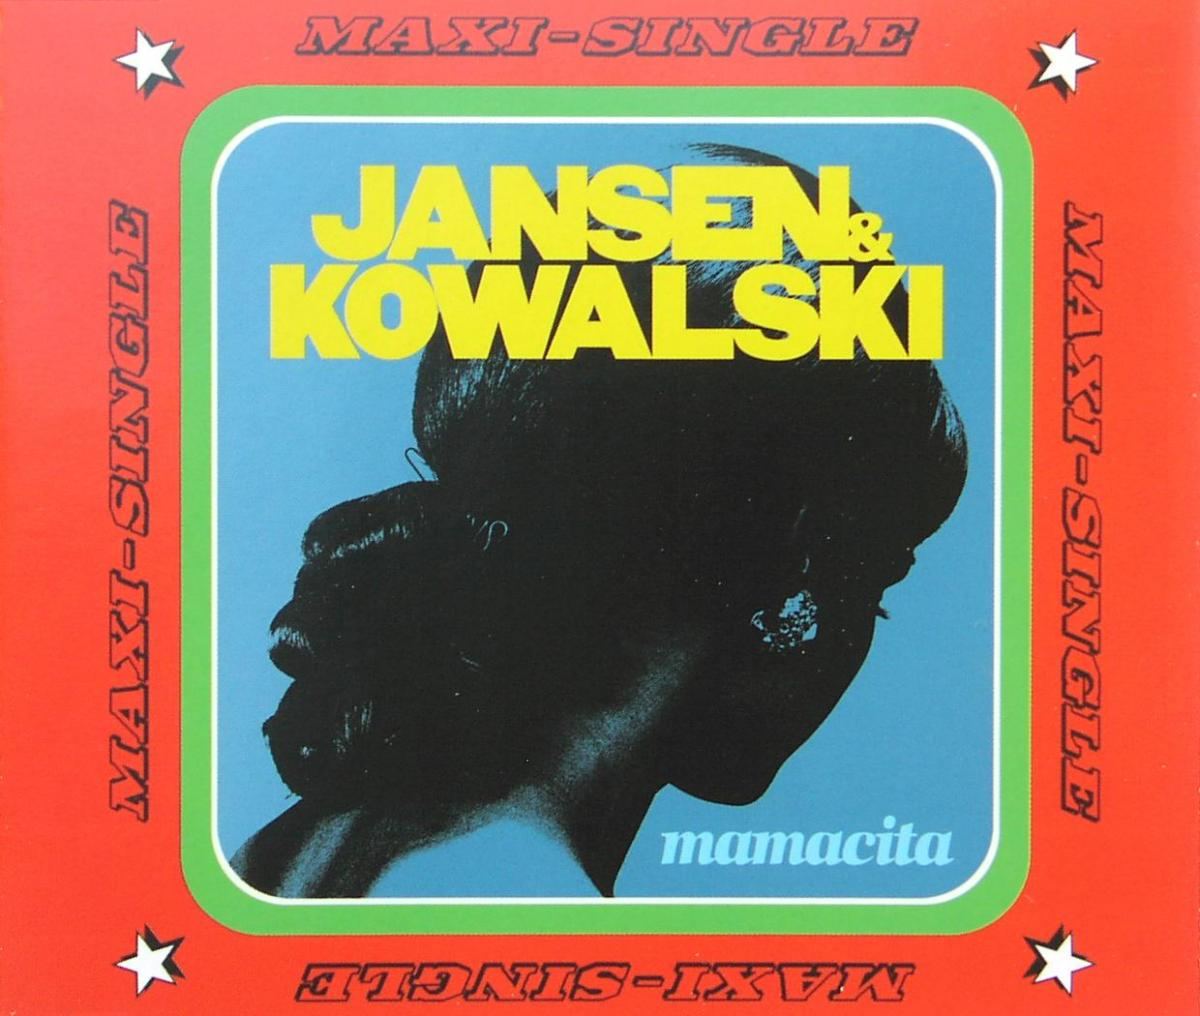 Jansen & Kowalski - Mamacita [CD-Single]